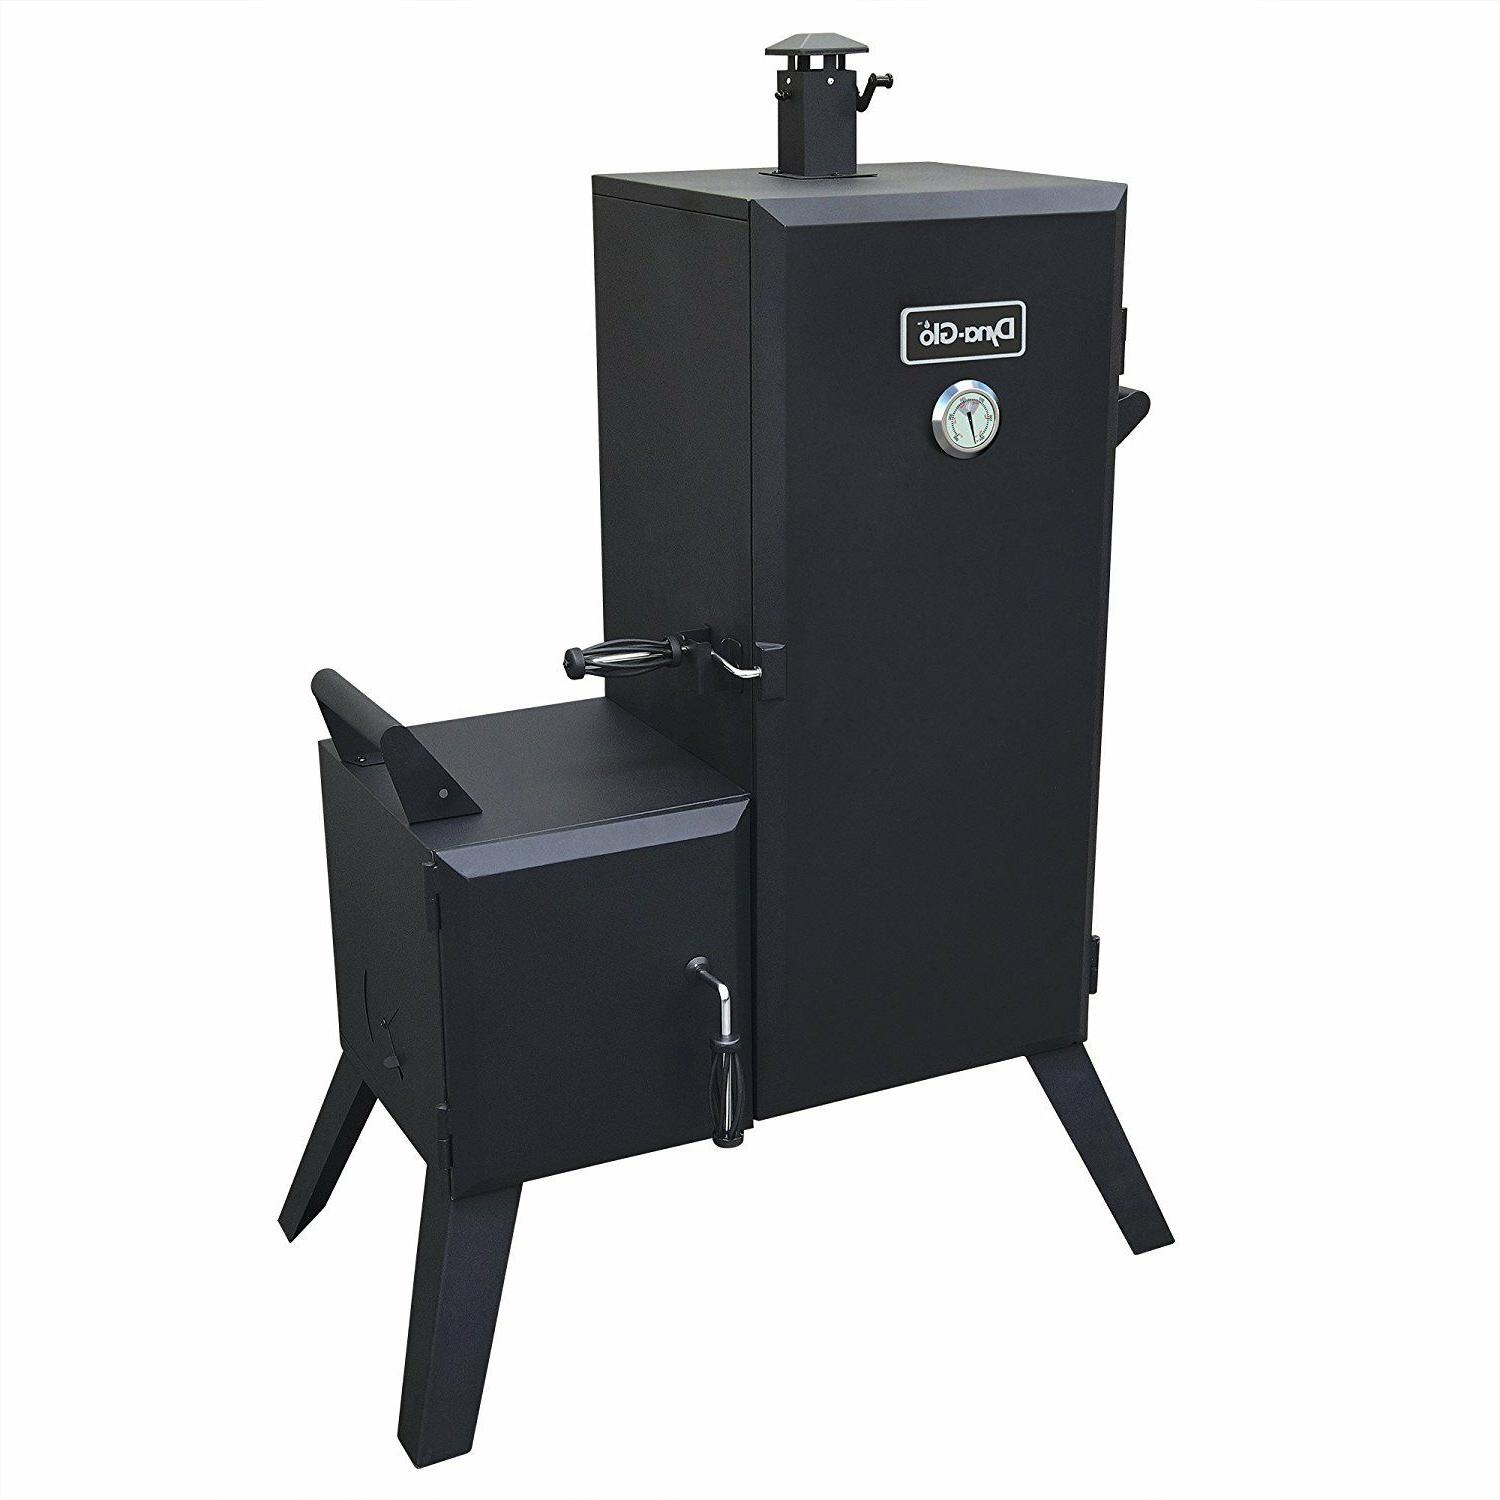 """Vertical Charcoal 36"""" BBQ Cooking Grill New"""